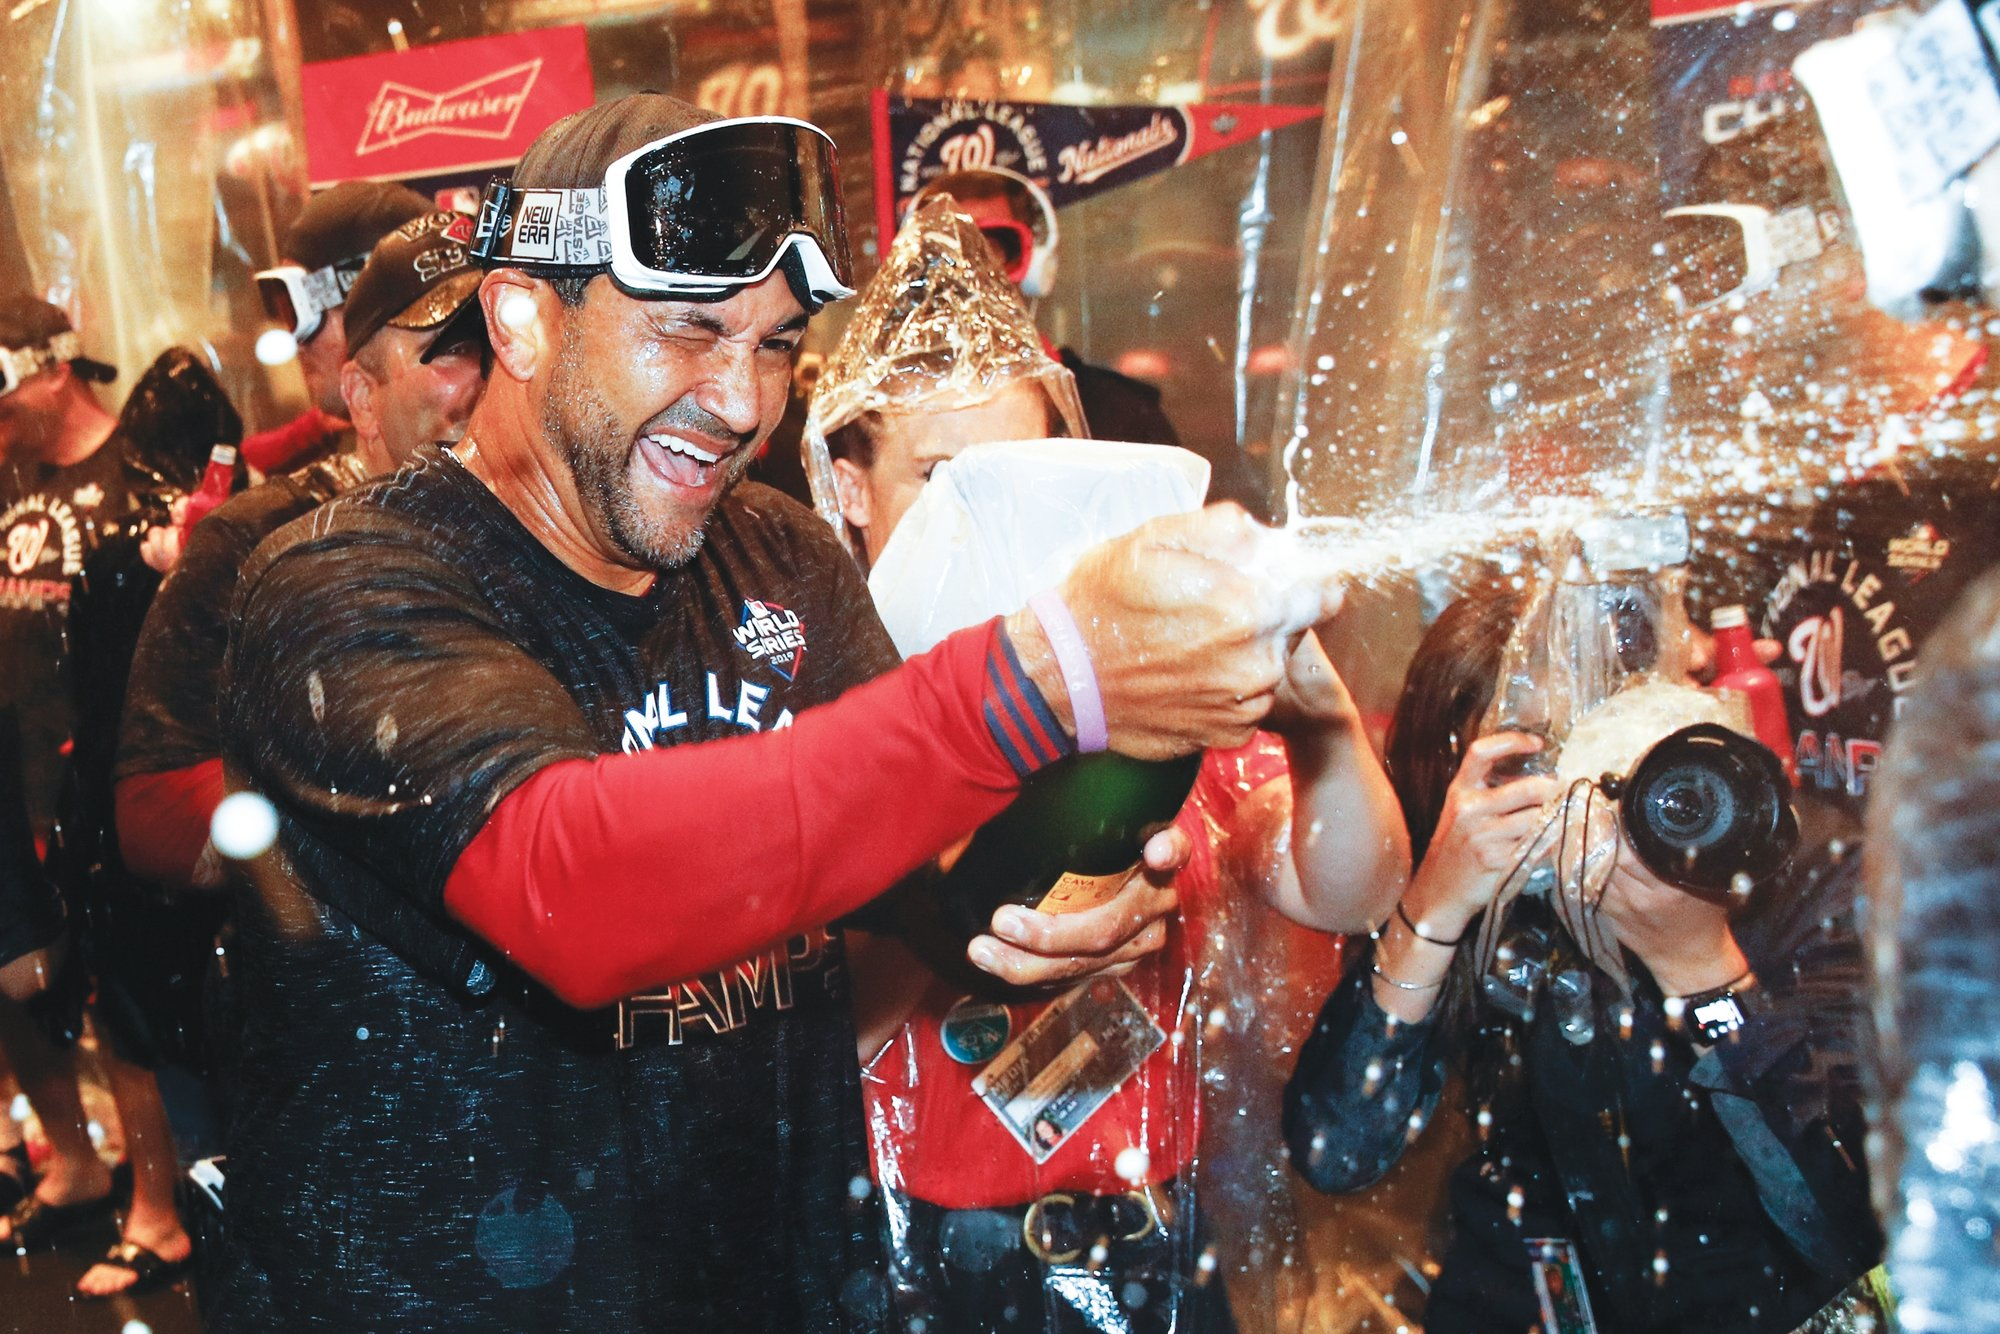 Washington Nationals manager Dave Martinez celebrates with his team after they completed a sweep of the St. Louis Cardinals in the National League Championship Series on Wednesday in Washington.